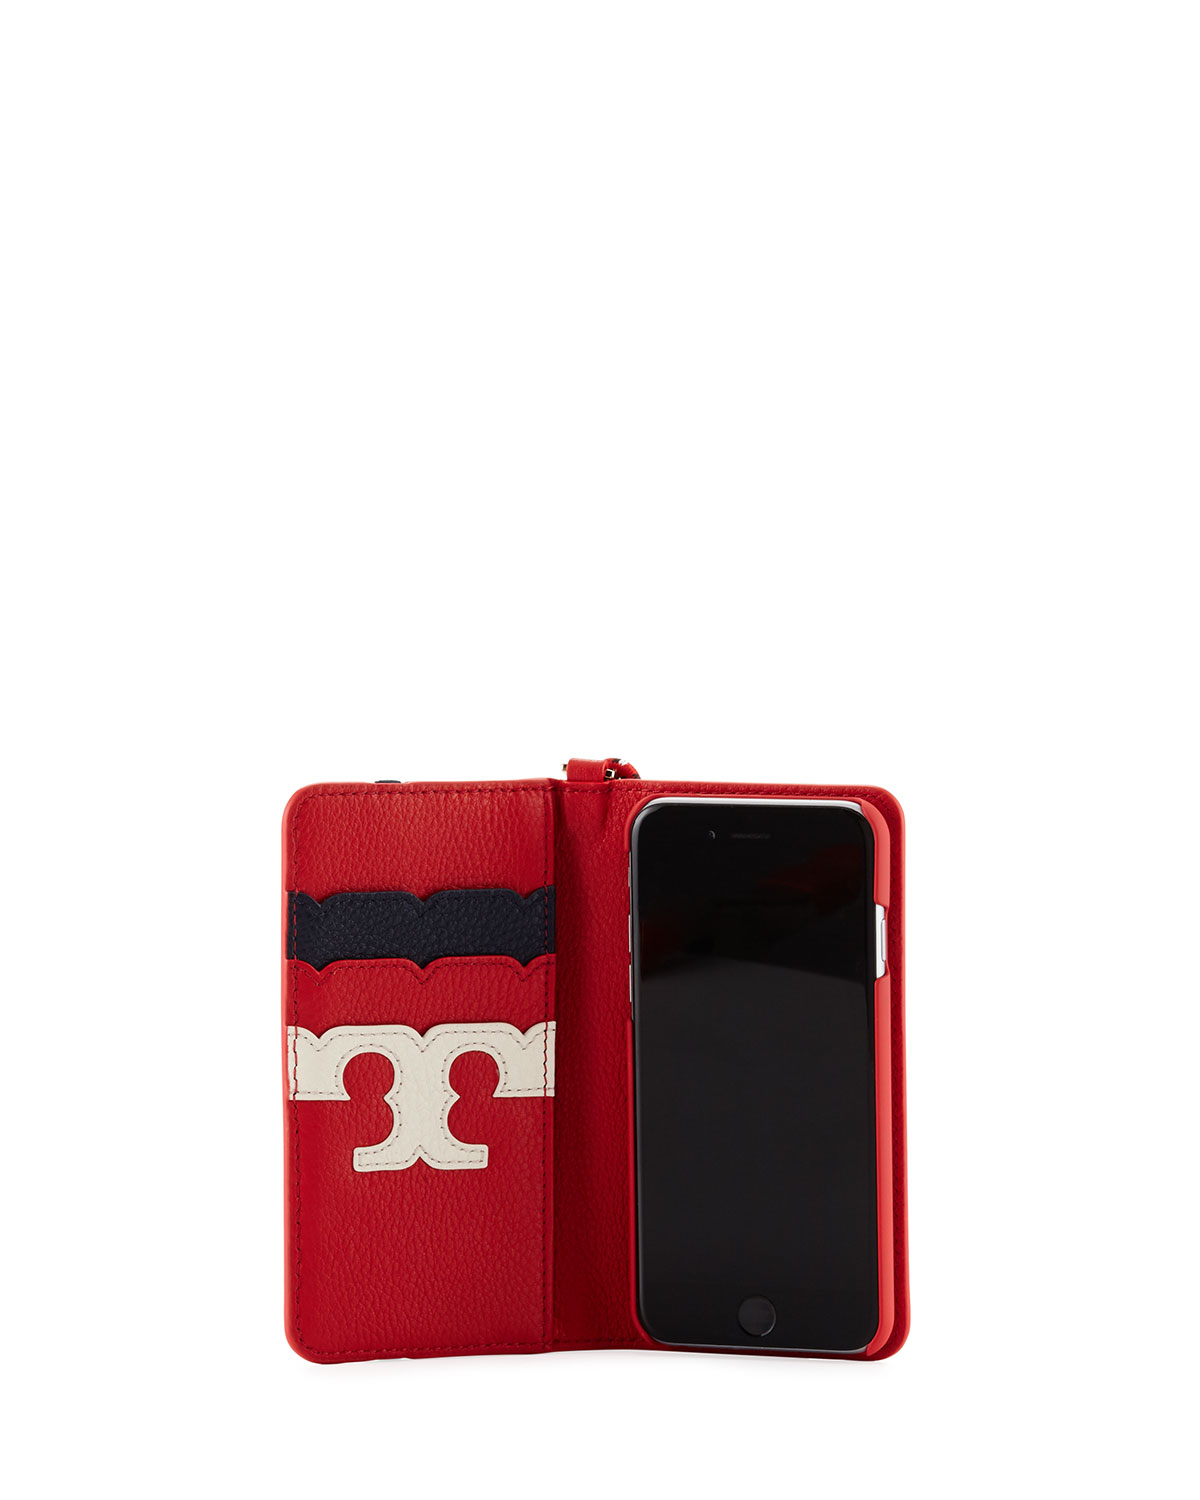 low priced aaabe 1c571 Scallop Stripe Folio iPhone 7 Case, Red